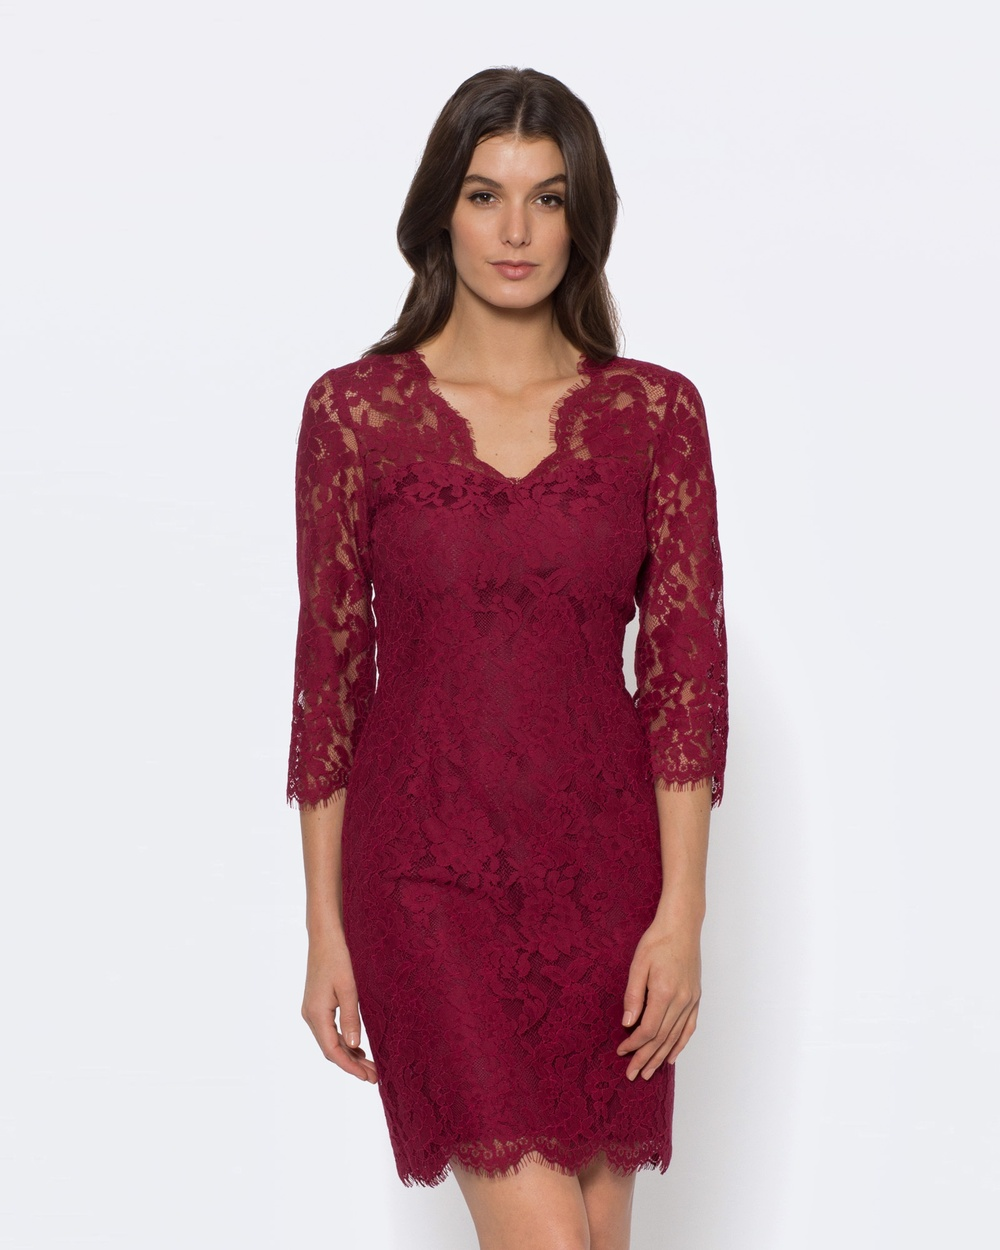 Alannah Hill The Little Lace Dress Dresses red The Little Lace Dress